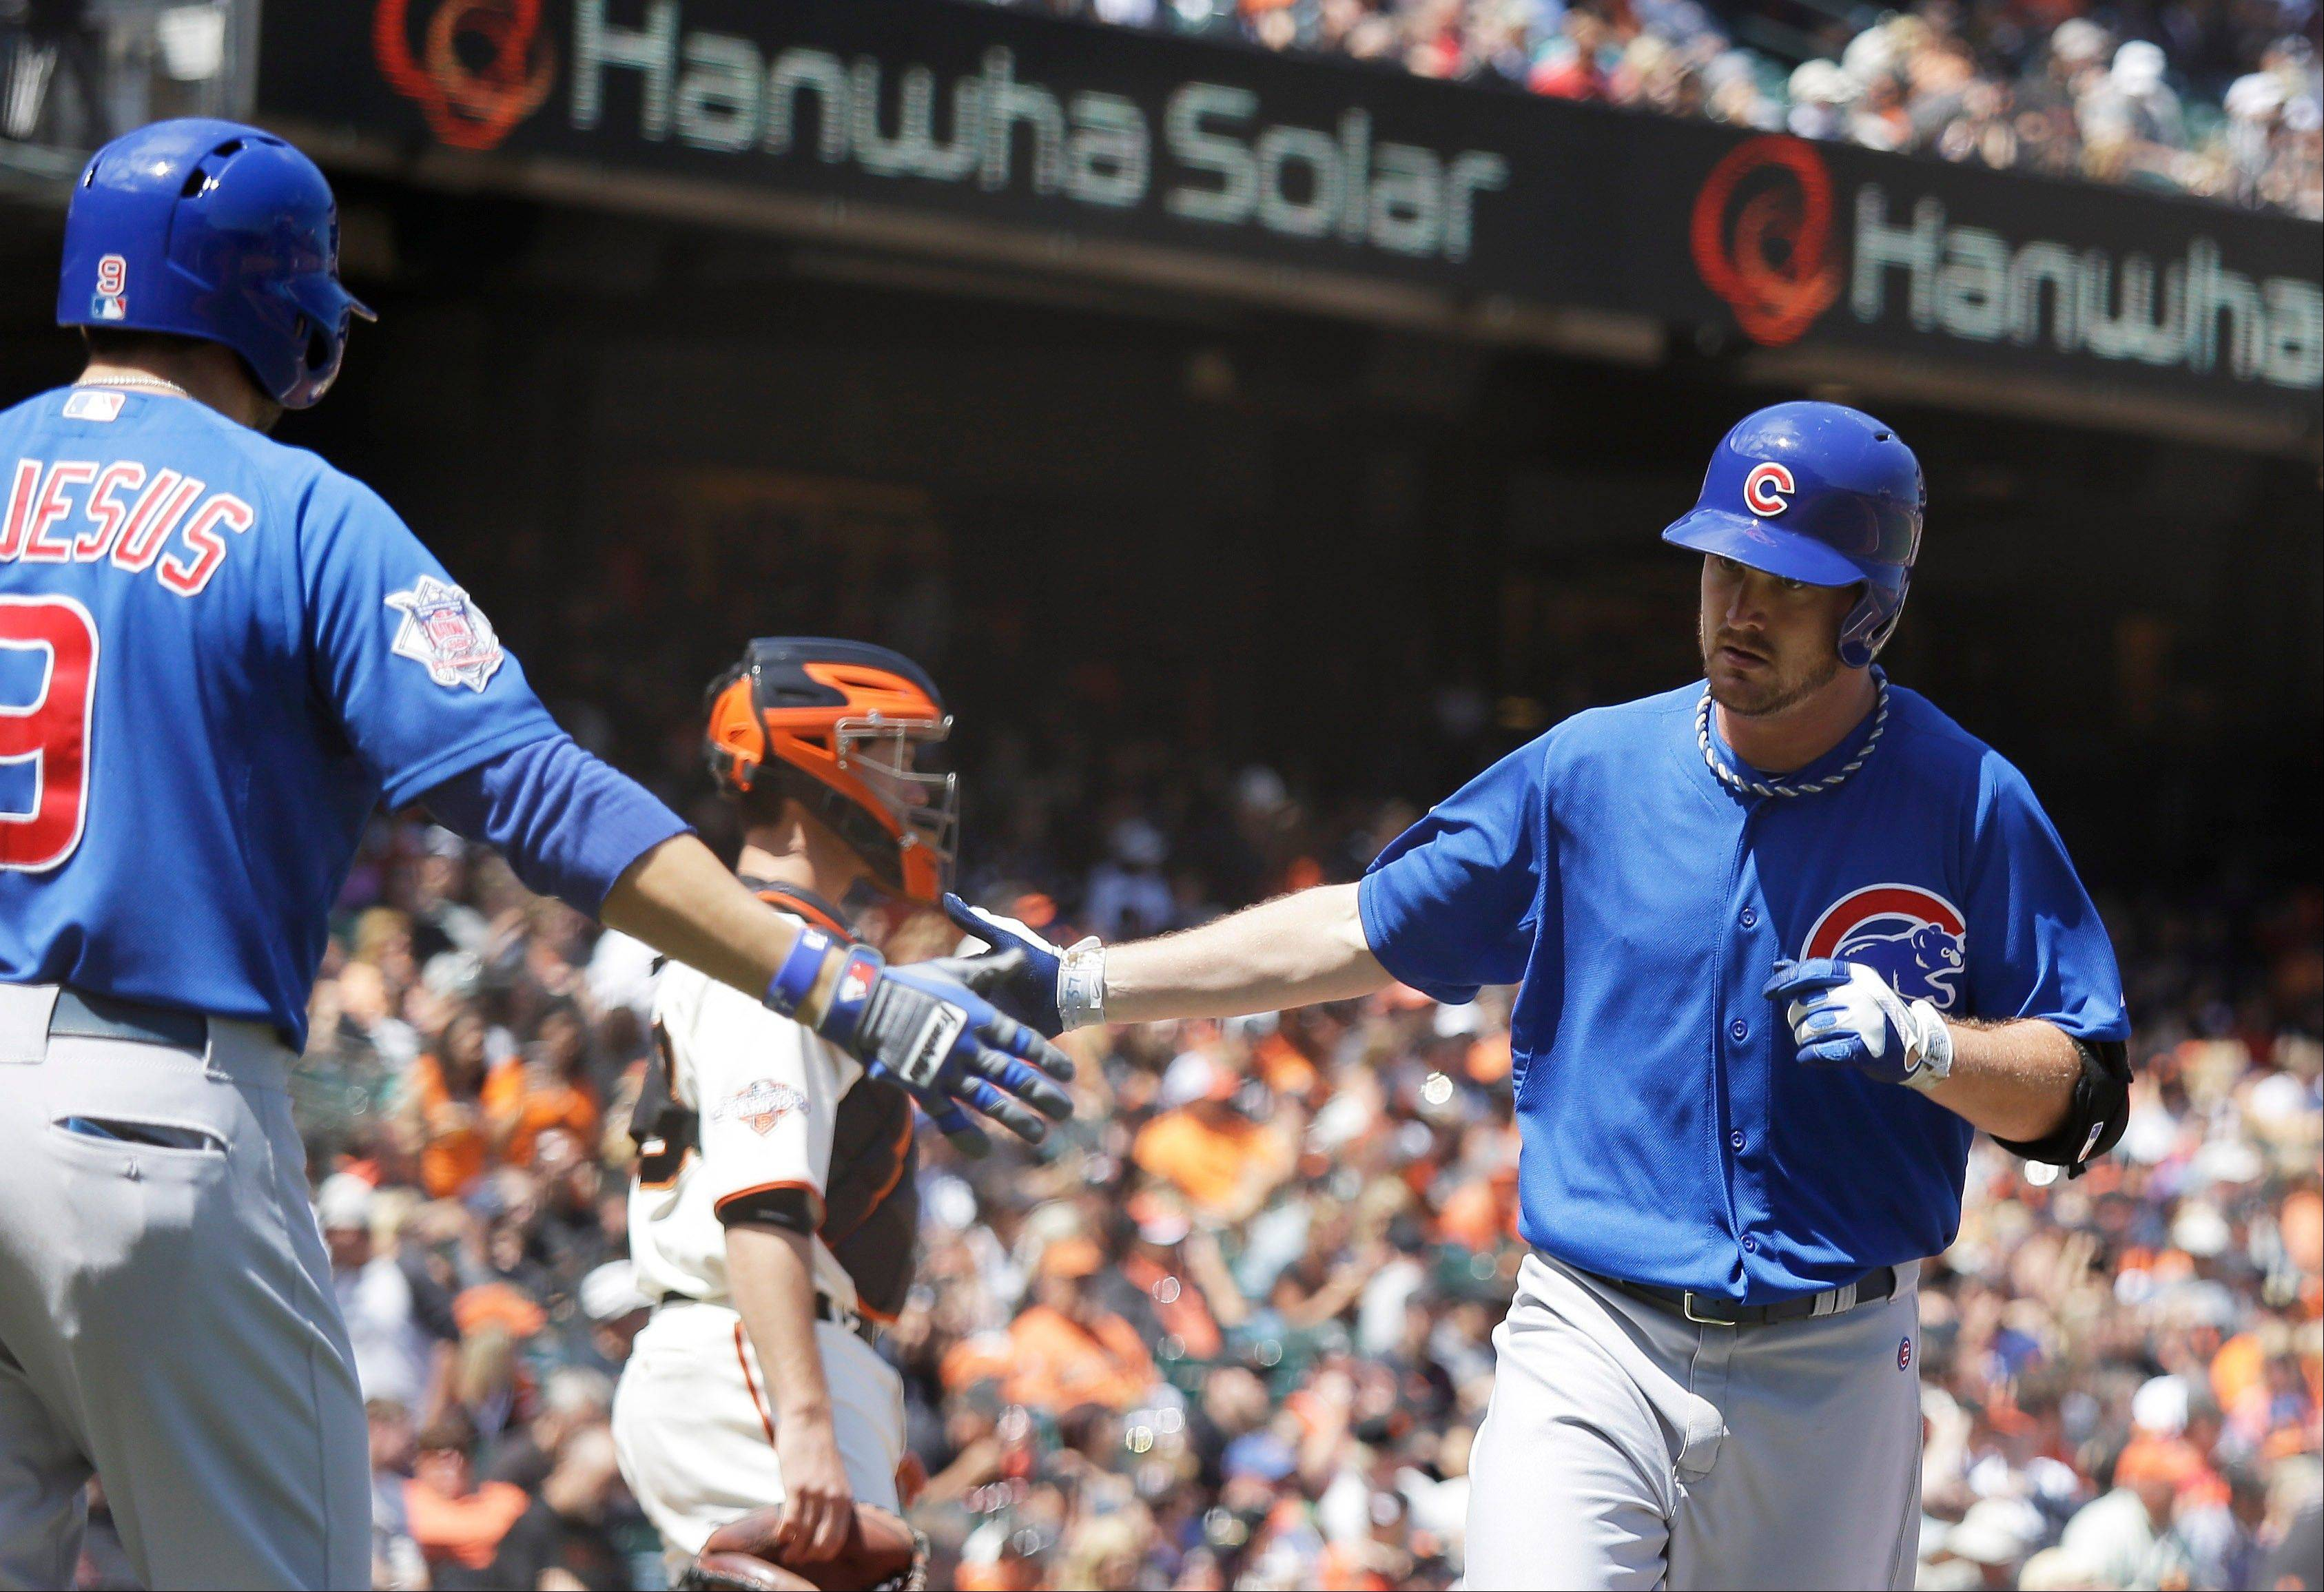 Cubs pitcher Travis Wood, right, is greeted by teammate David DeJesus, left, after hitting a home run off San Francisco Giants starting pitcher Tim Lincecum during Sunday's fifth inning in San Francisco.